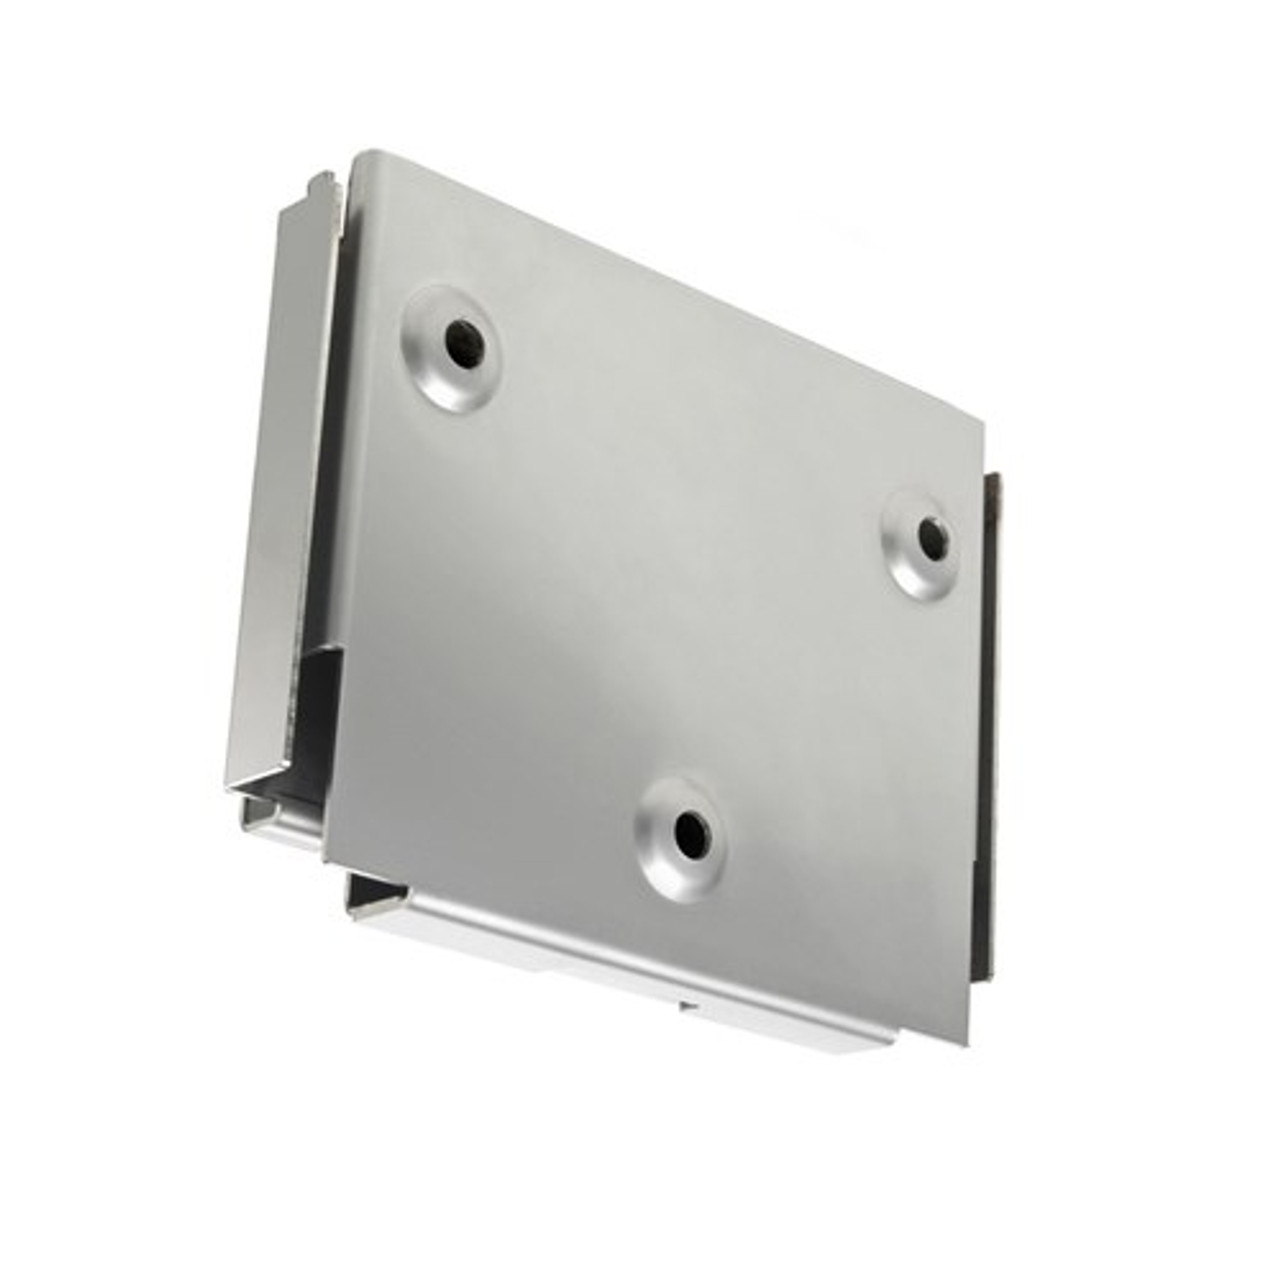 Genuine Dab mounting assembly for Esybox and Esybox Mini